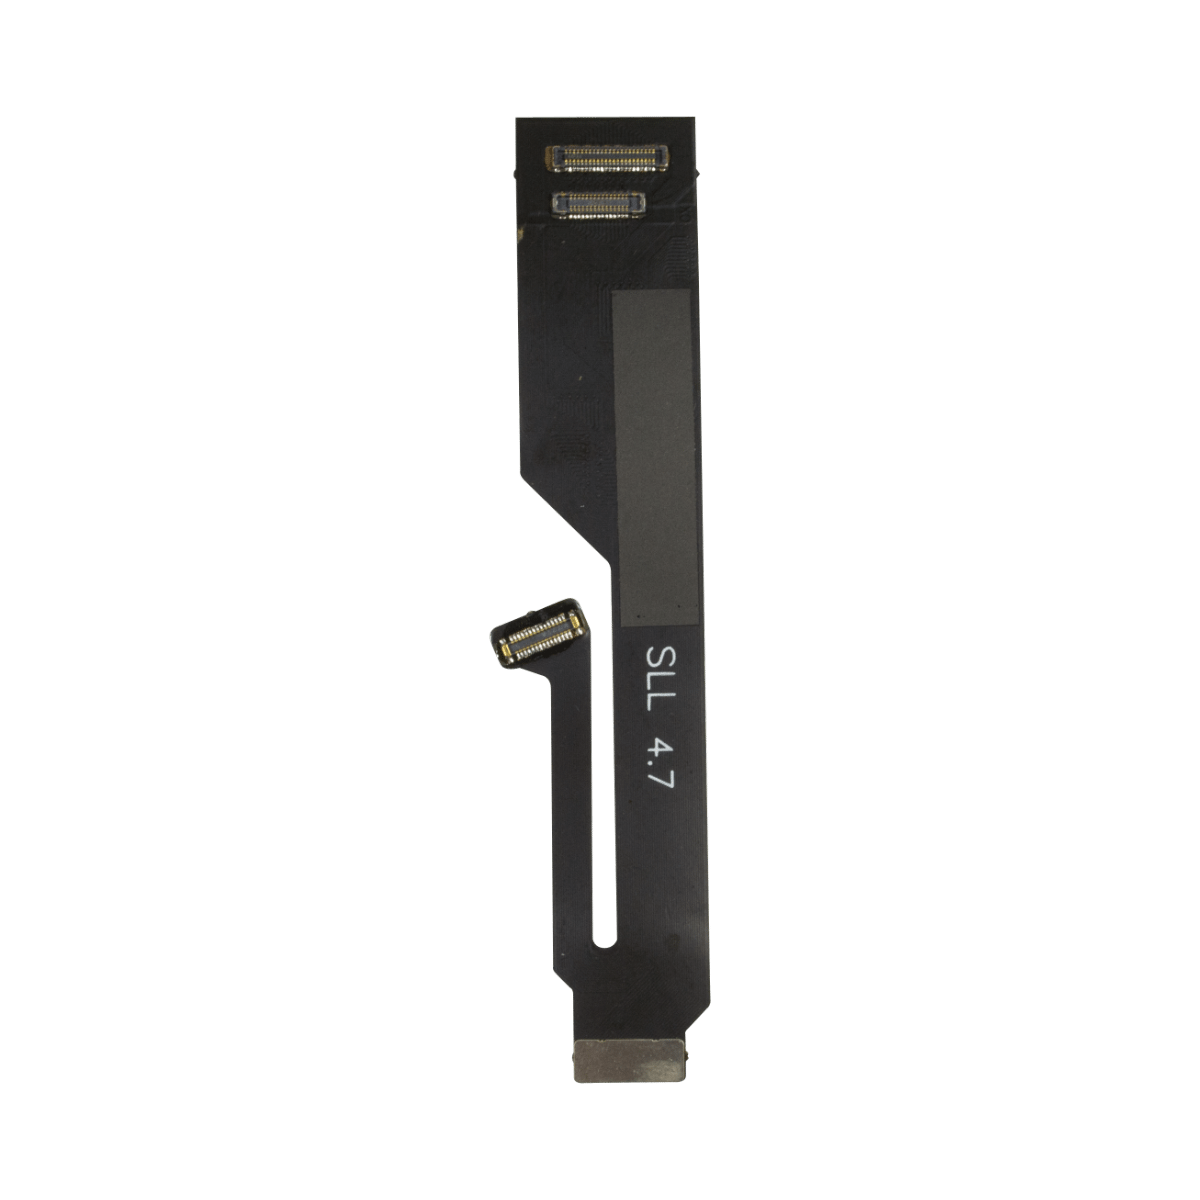 iPhone 6 LCD & Touch Screen Tester Flex Cable